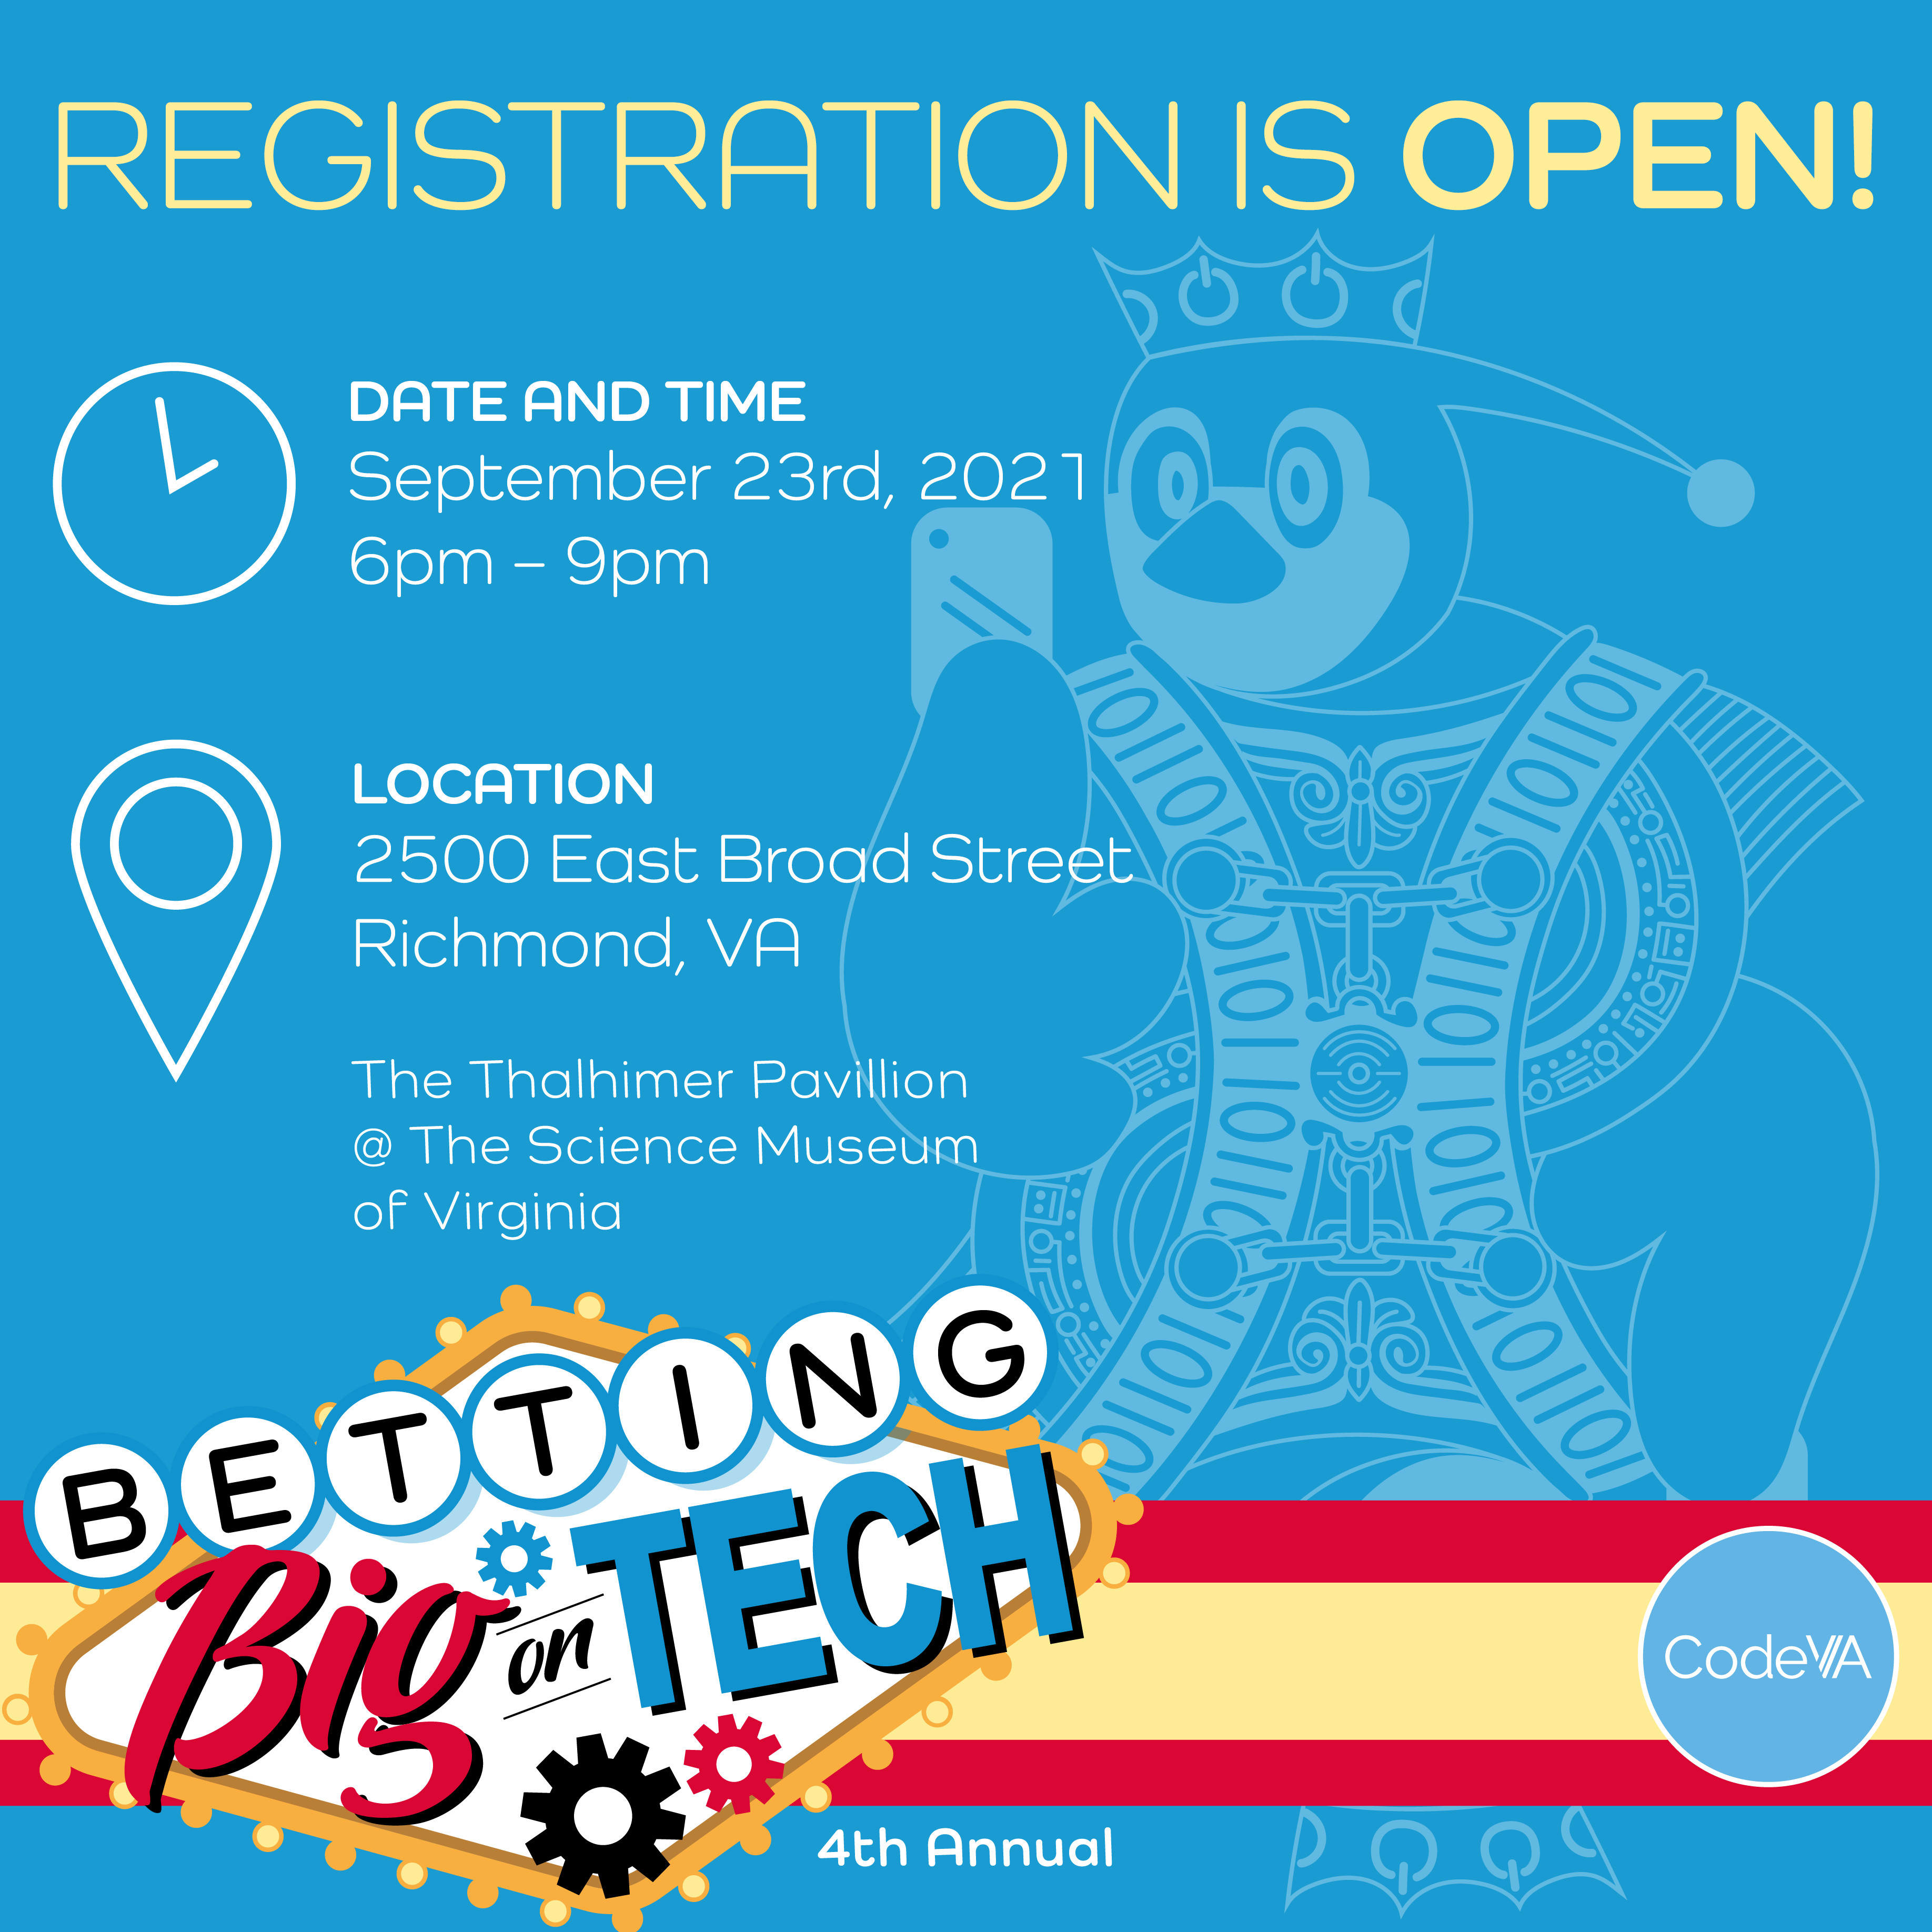 Betting Big On Tech, Save the Date